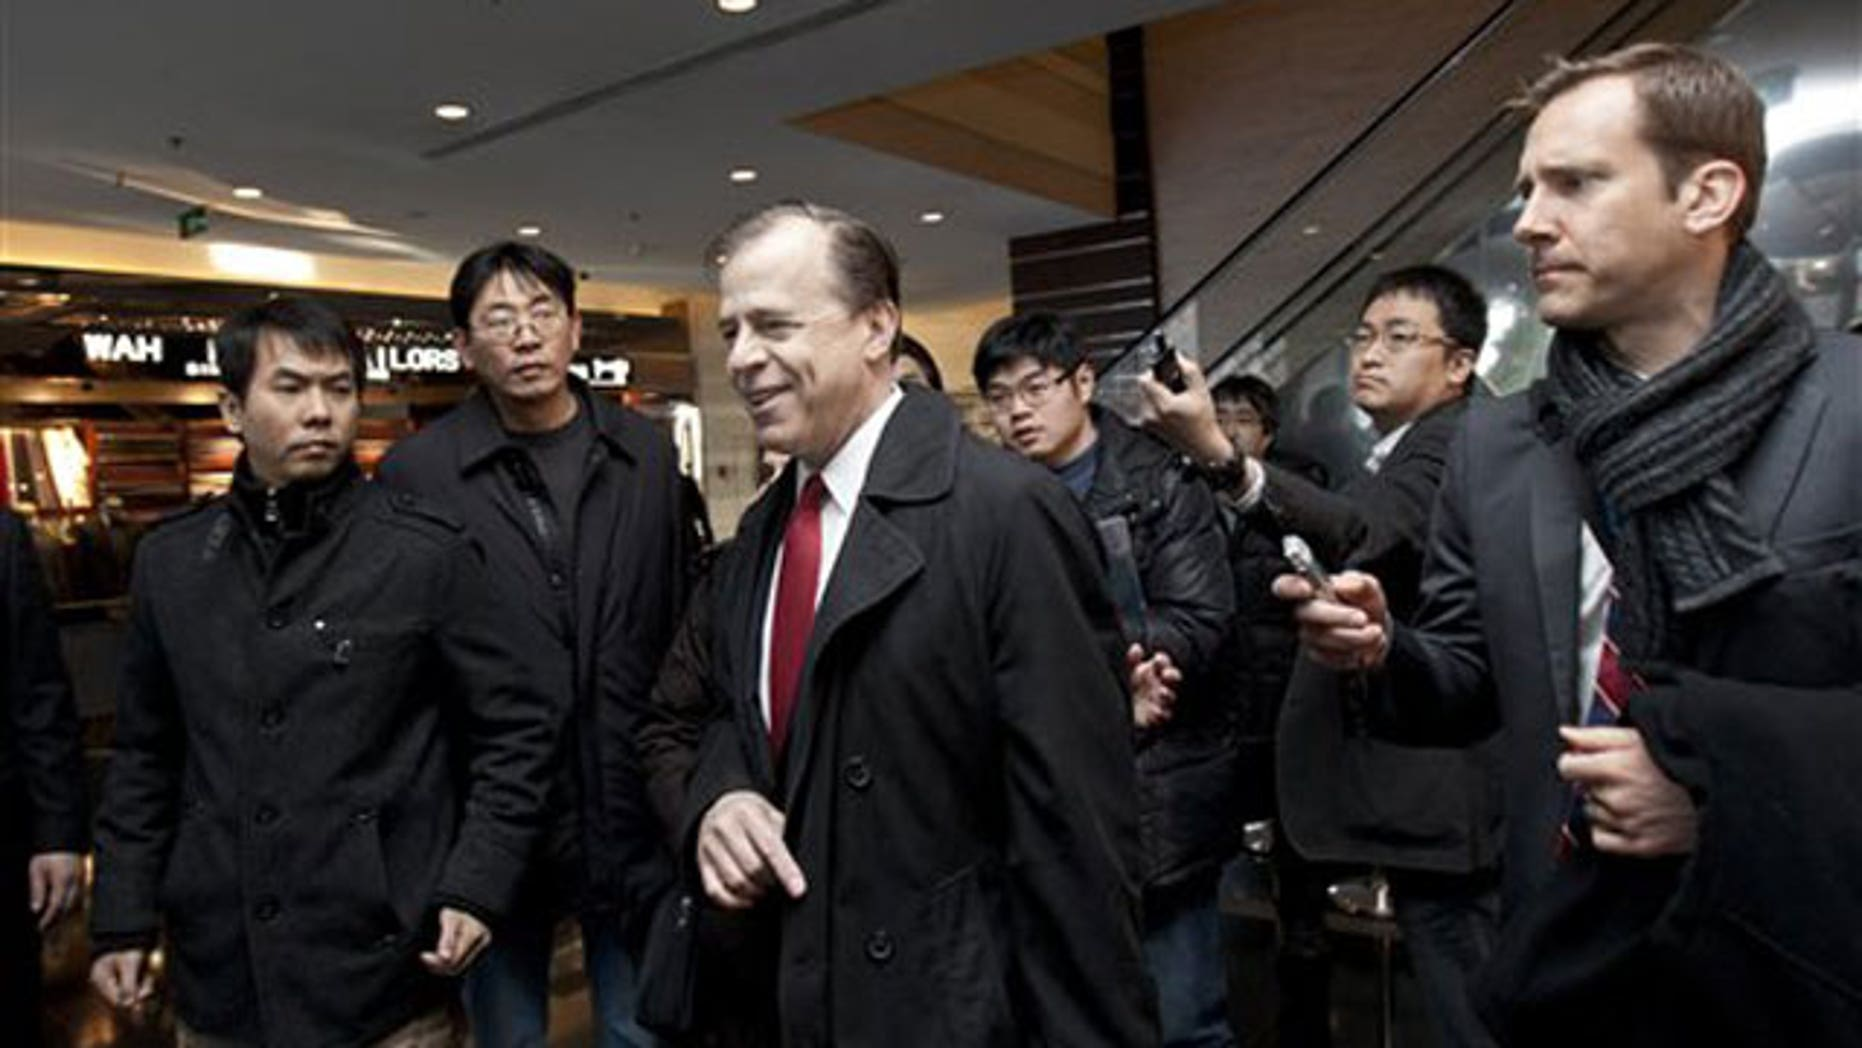 Feb. 23, 2012: U.S. envoy for North Korean Affairs Glyn Davies, center, is surrounded by journalists after giving a statement to media at a hotel in Beijing, China.